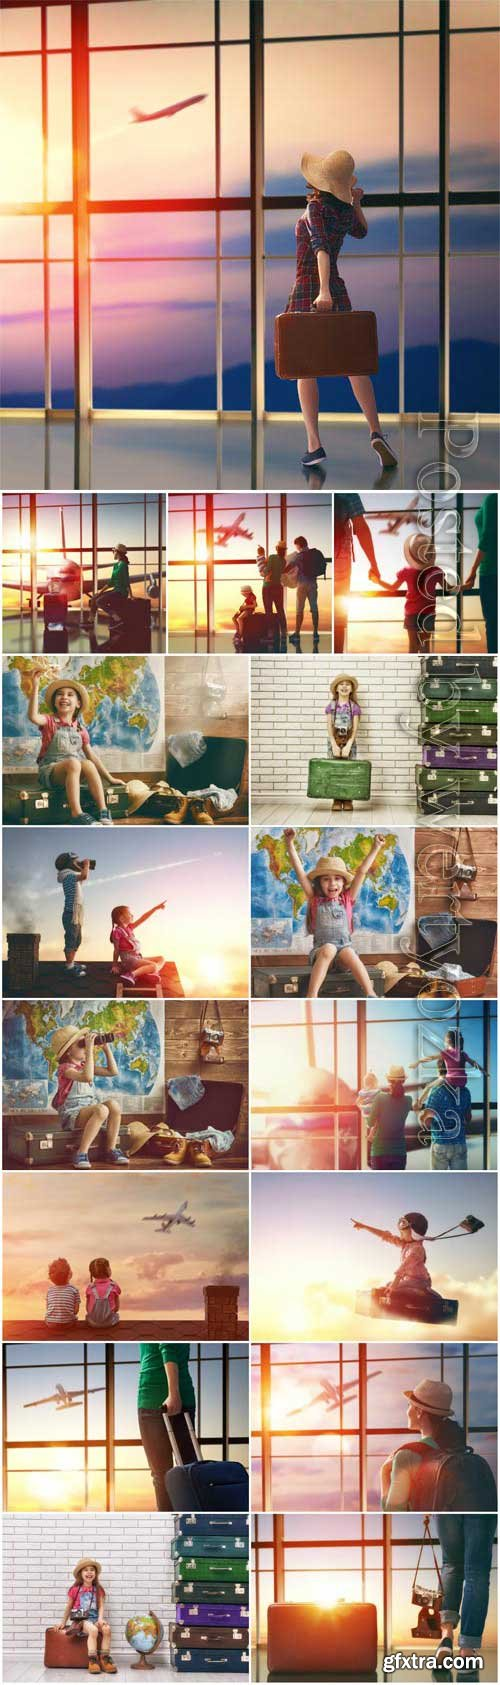 People and travel concept stock photo